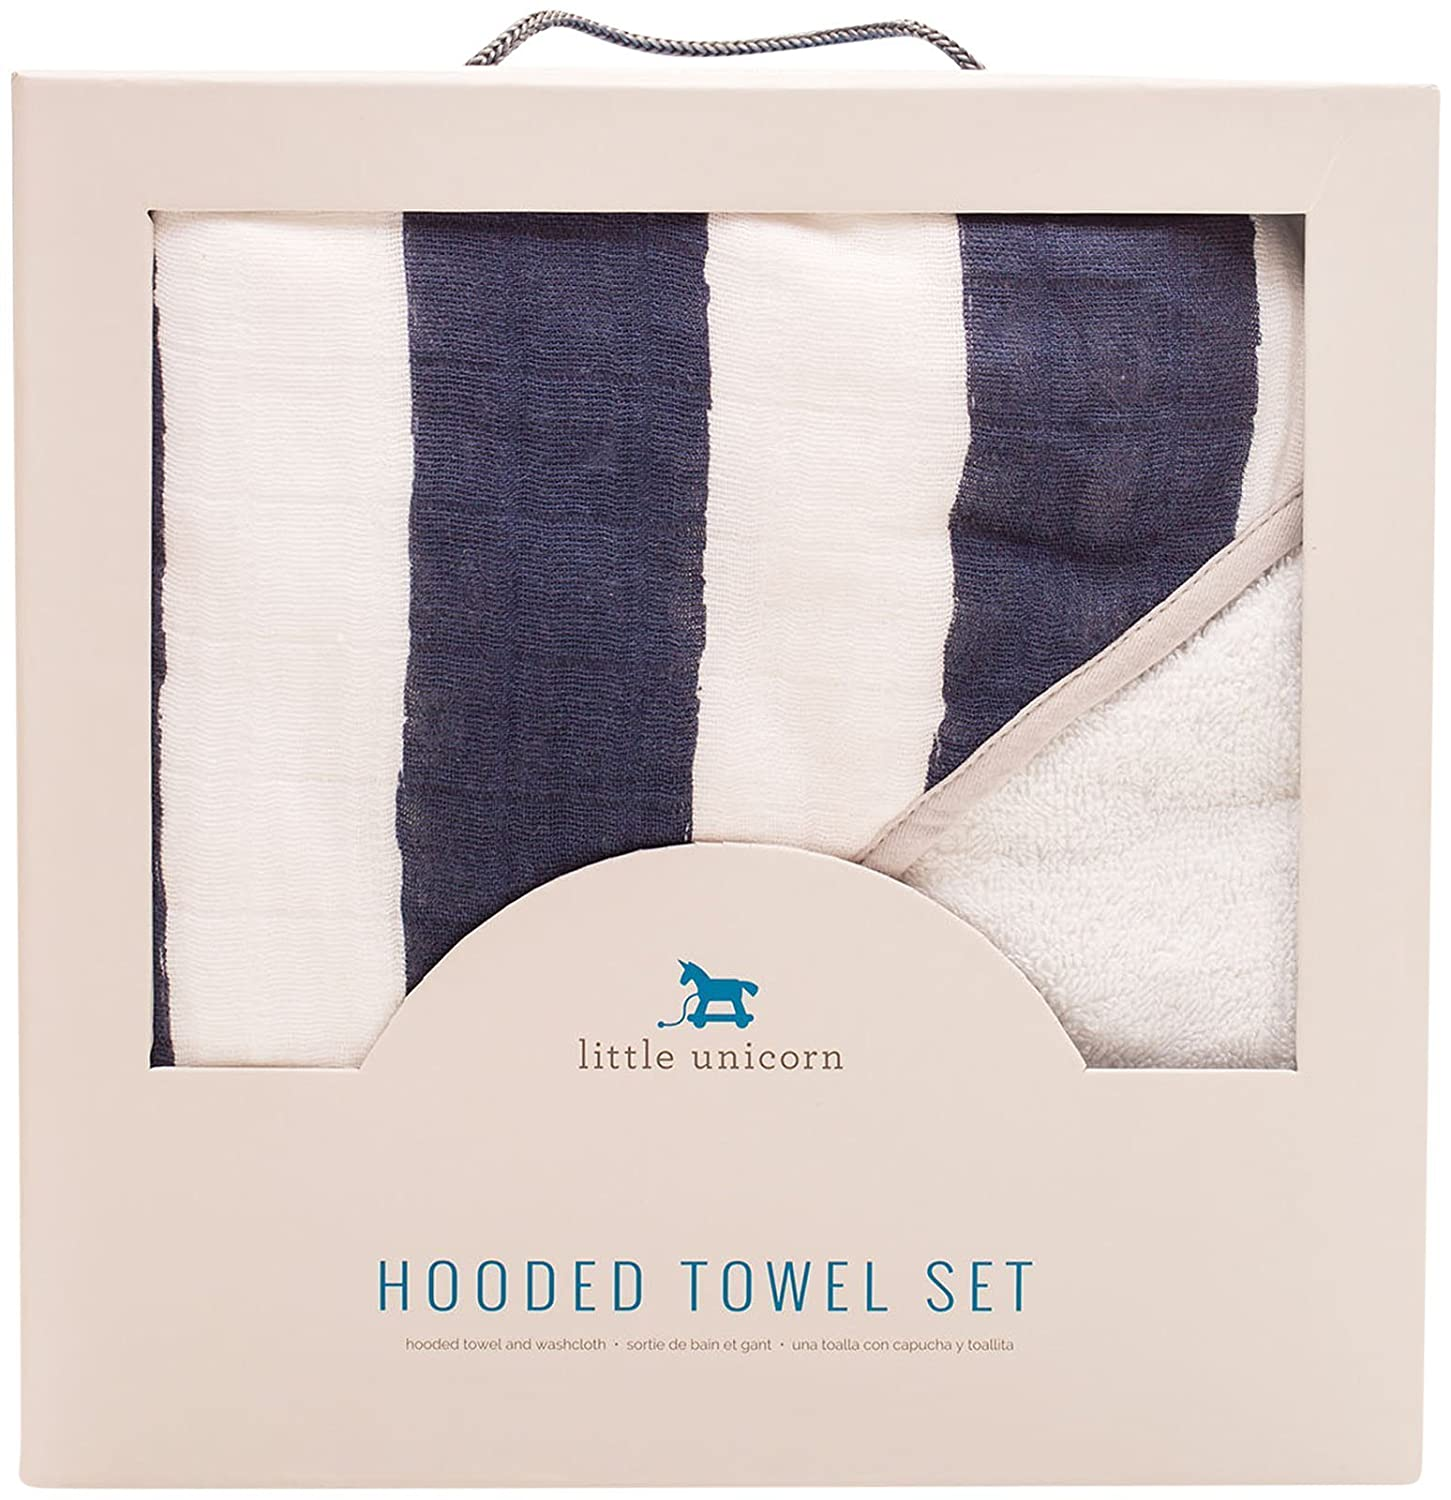 Amazon.com : Little Unicorn Cotton Hooded Towel & Wash Cloth Set - Navy Stripe : Baby